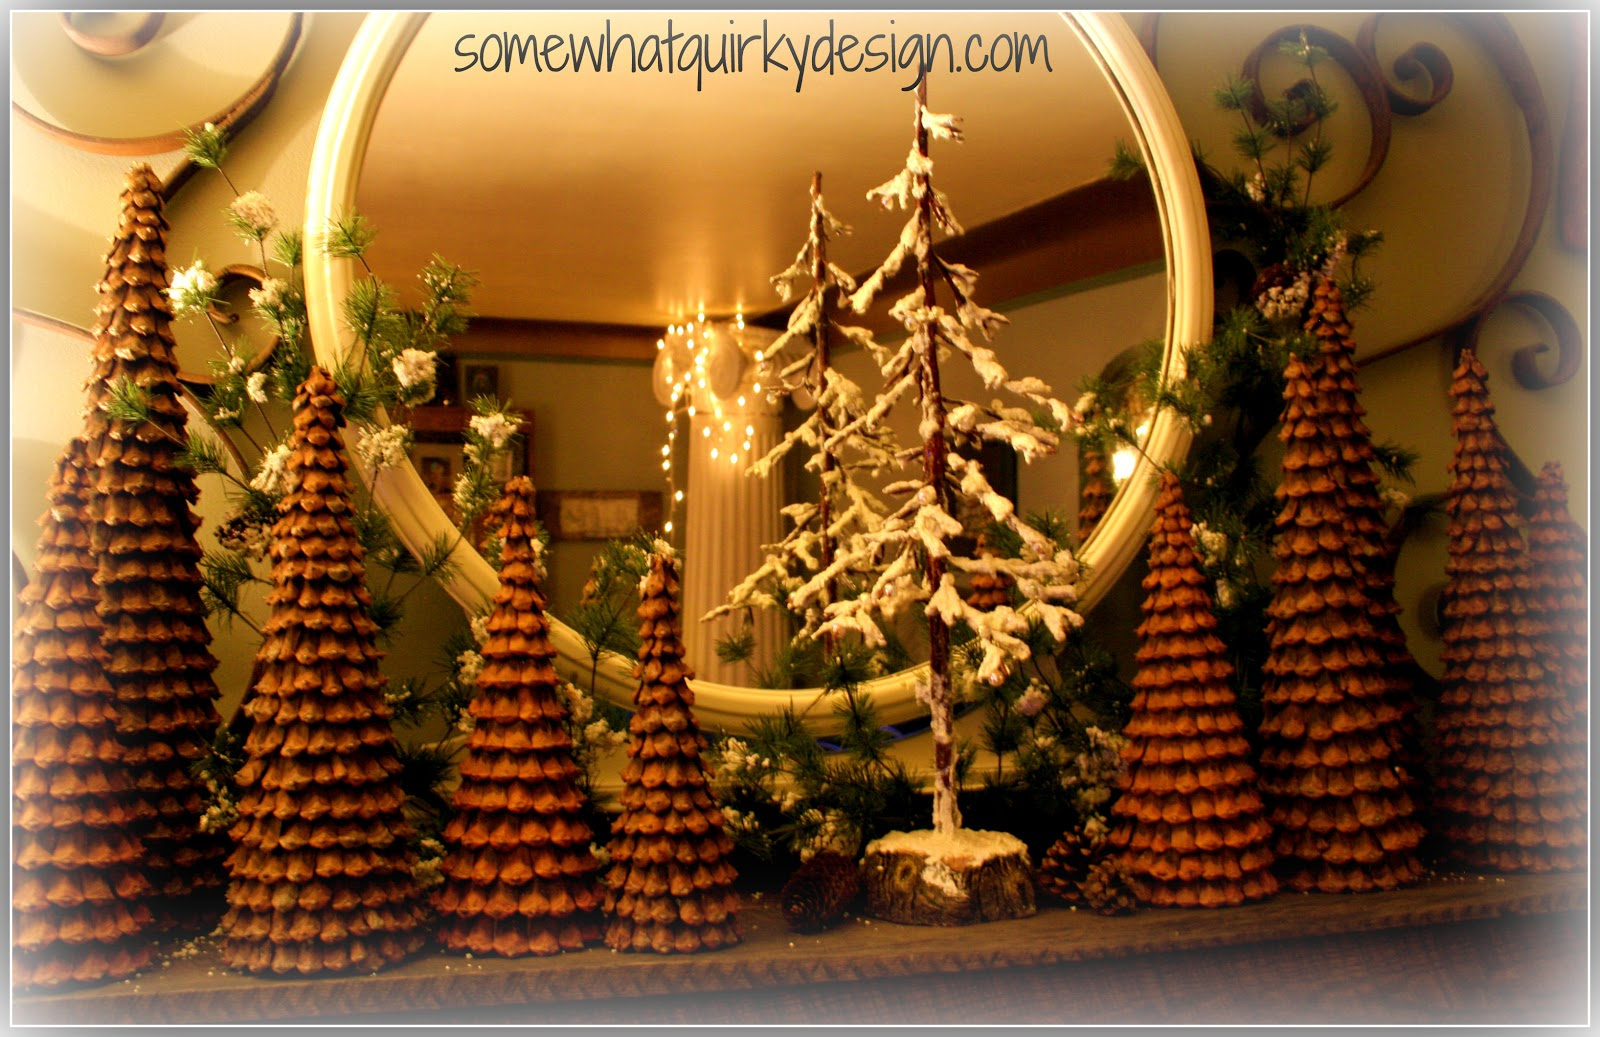 Somewhat Quirky: Pine Cone Christmas Trees